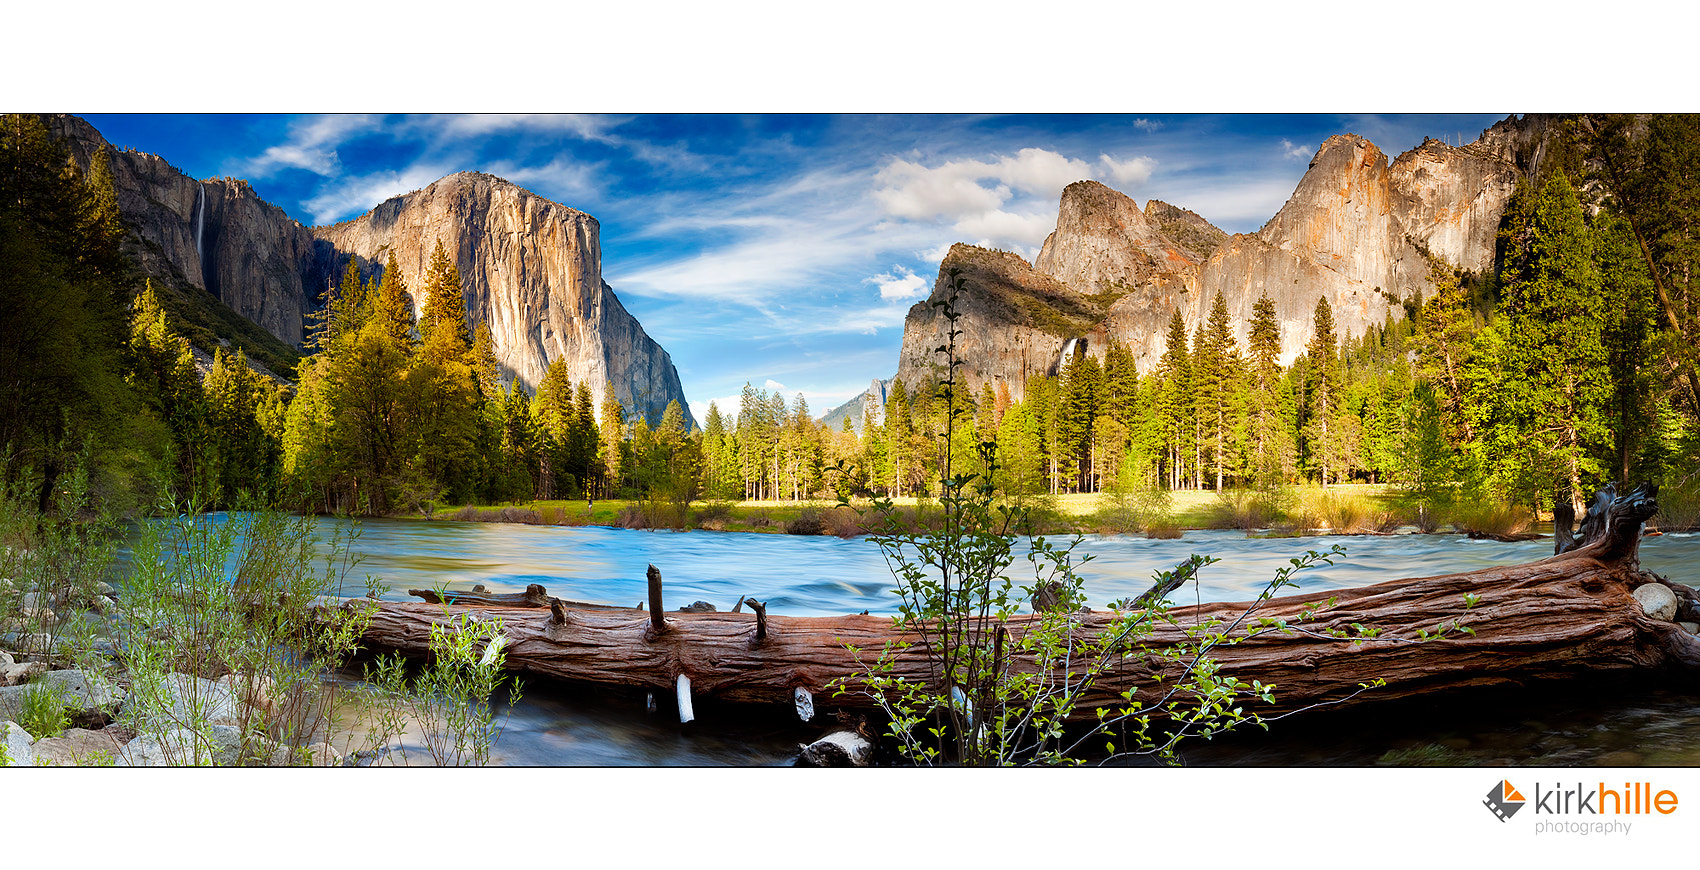 Photograph Yosemite by Kirk Hille on 500px